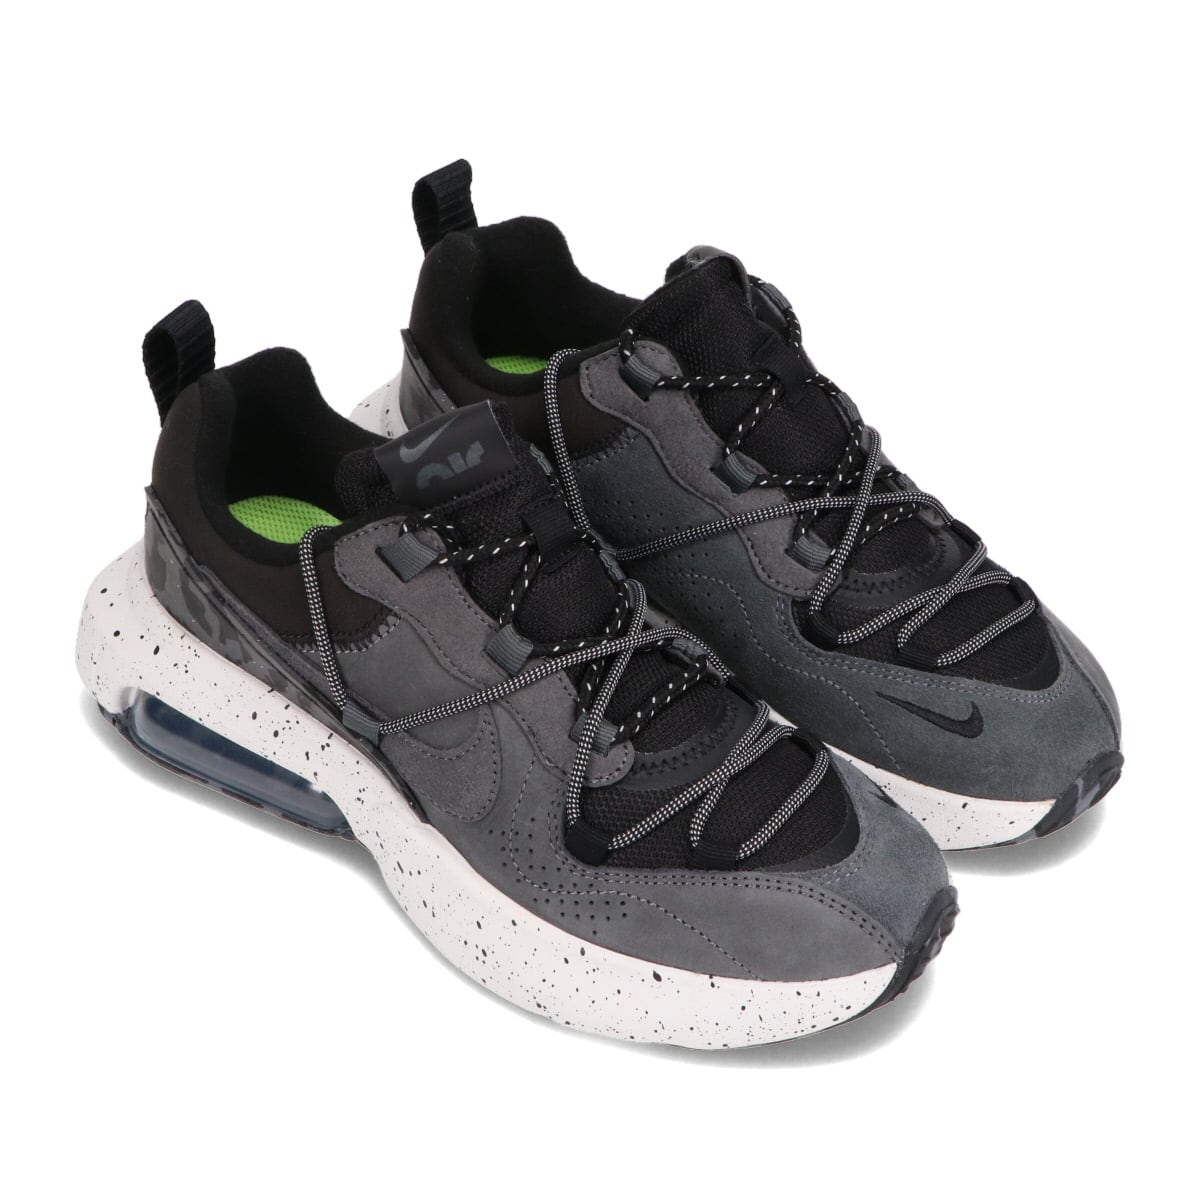 NIKE W AIR MAX VIVA BLACK/IRON GREY-SUMMIT WHITE-VOLT GLOW 21SP-I_photo_large